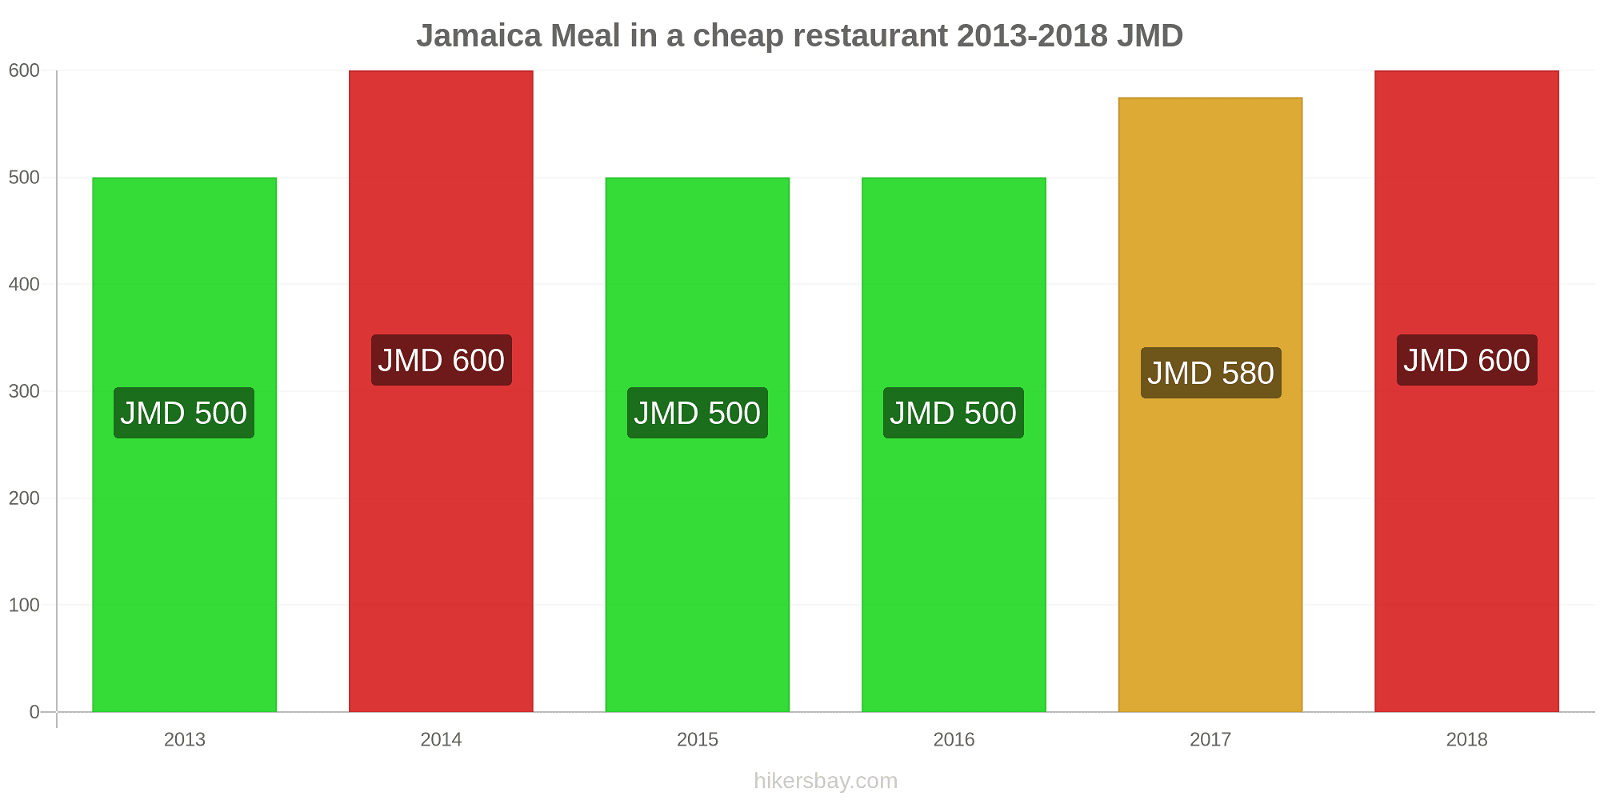 Jamaica price changes Meal in a cheap restaurant hikersbay.com